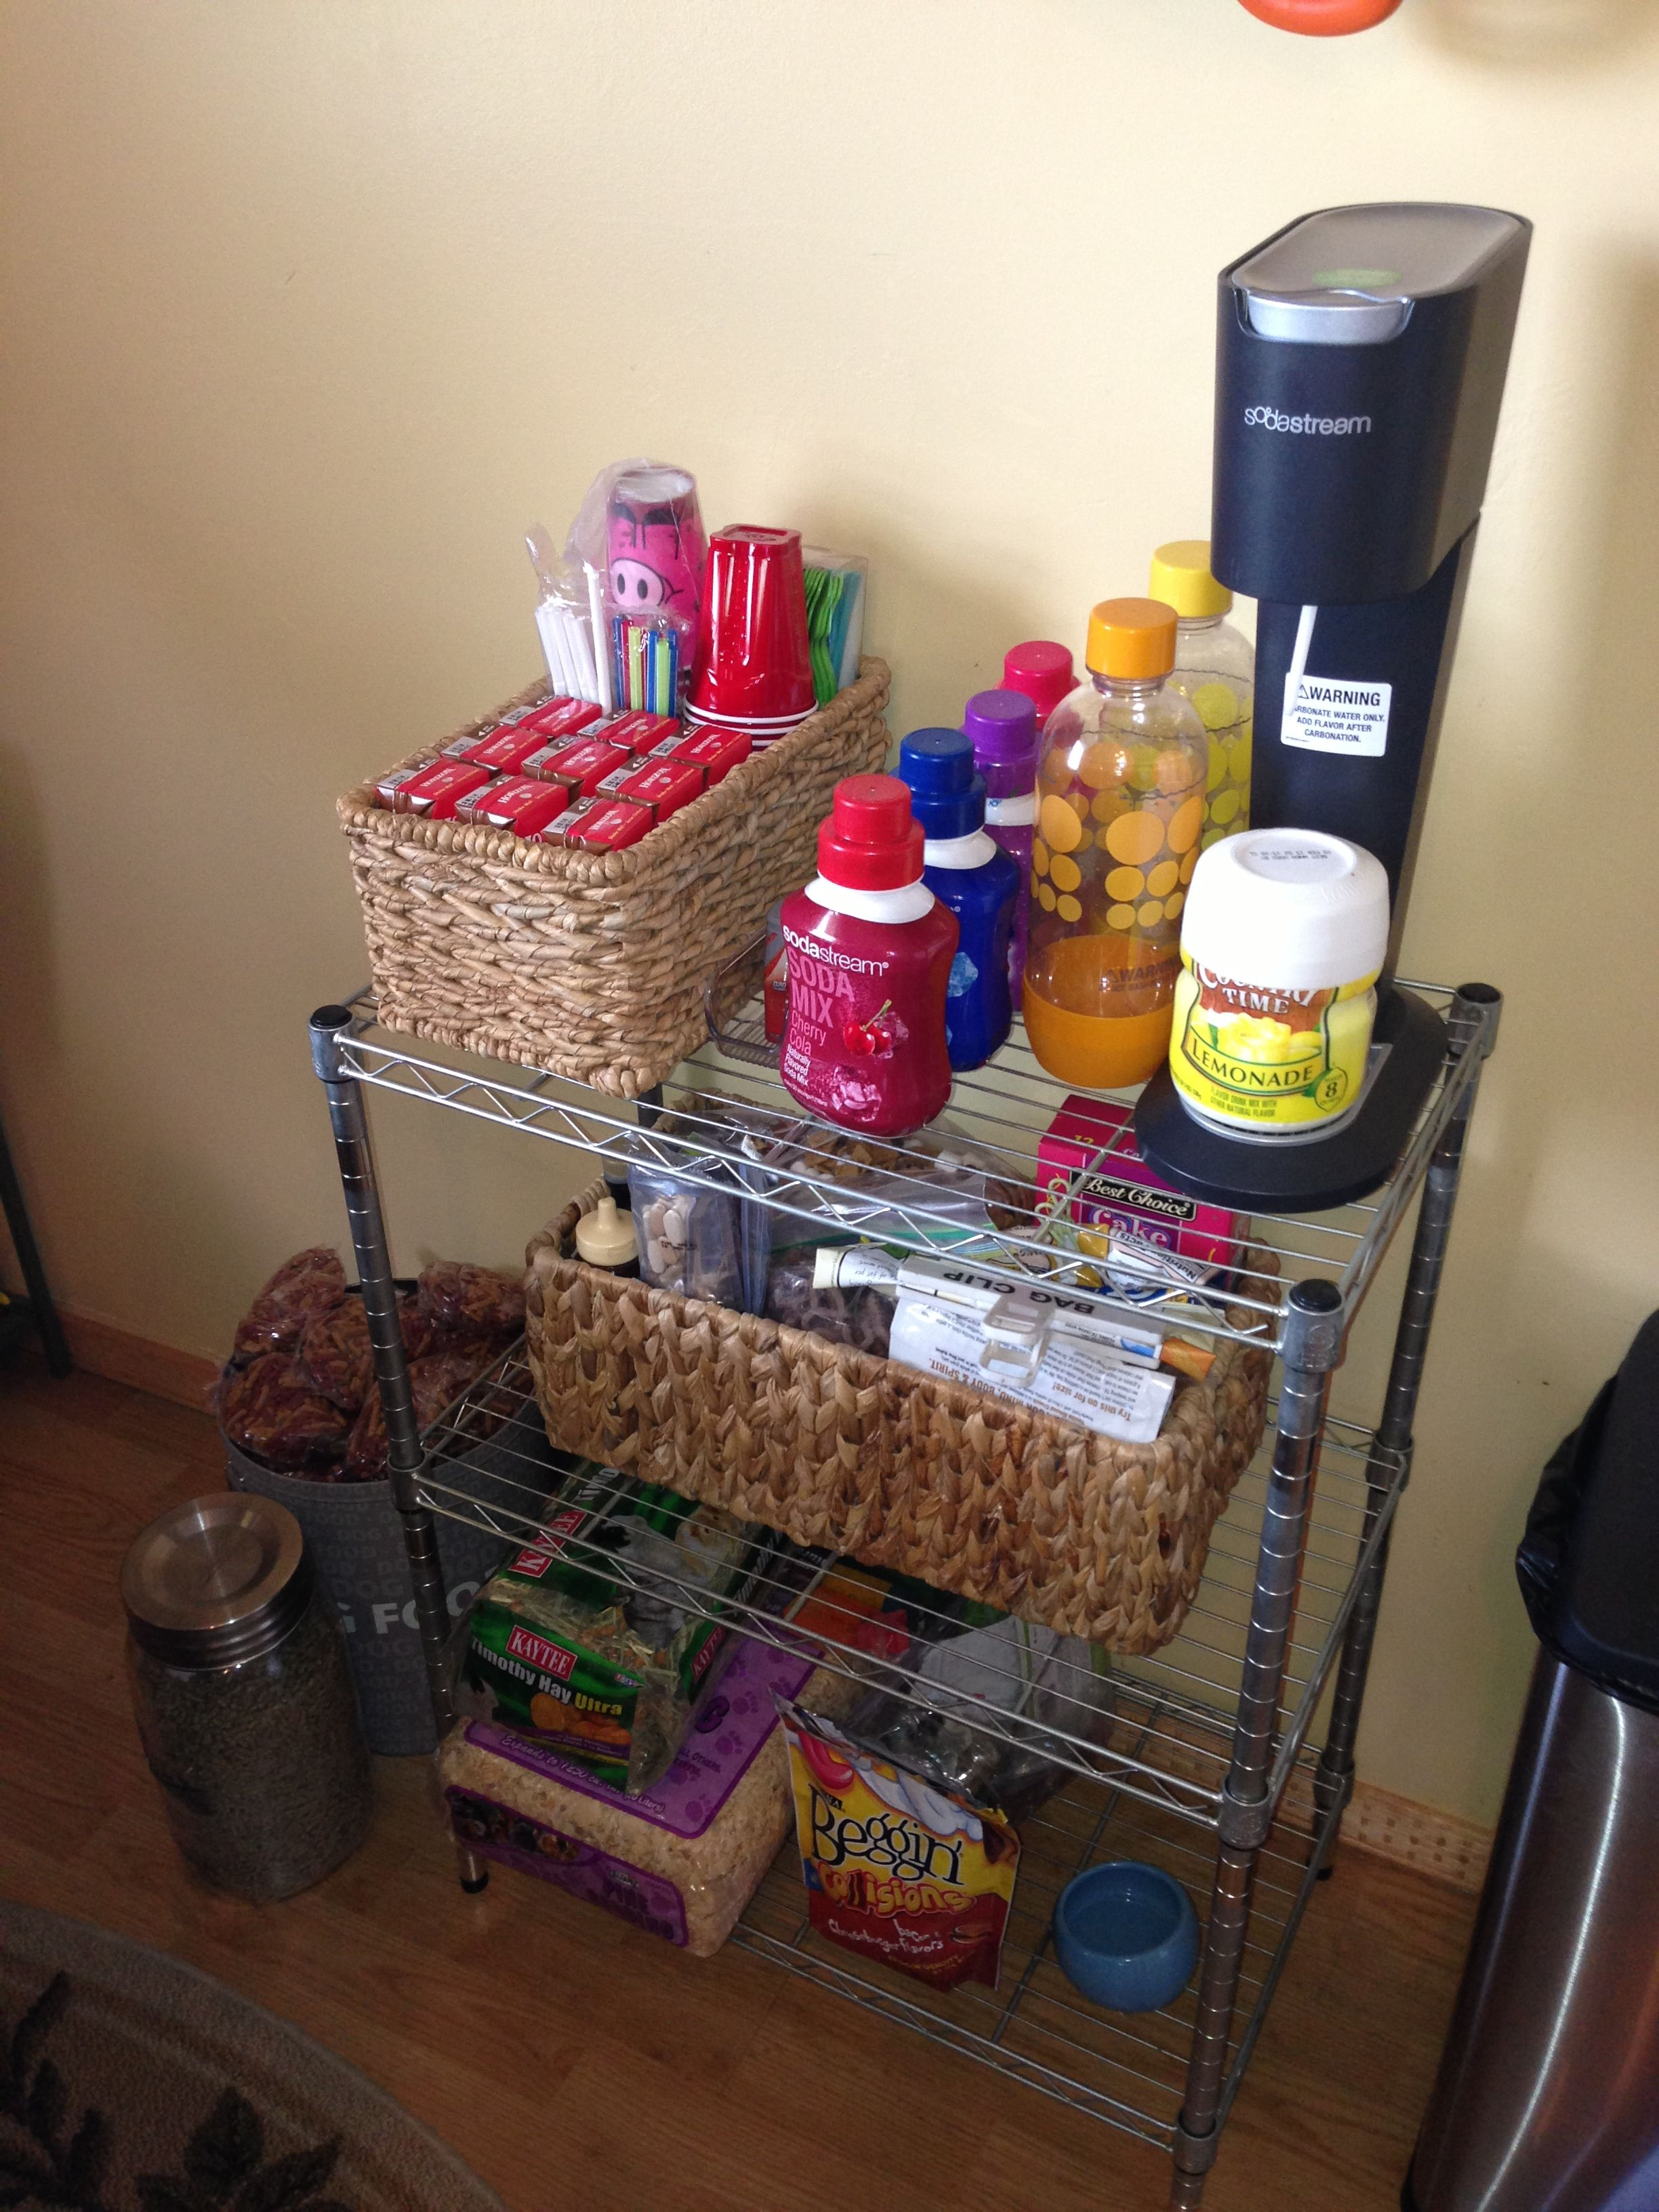 Our small space organization for drinks/snacks and pet